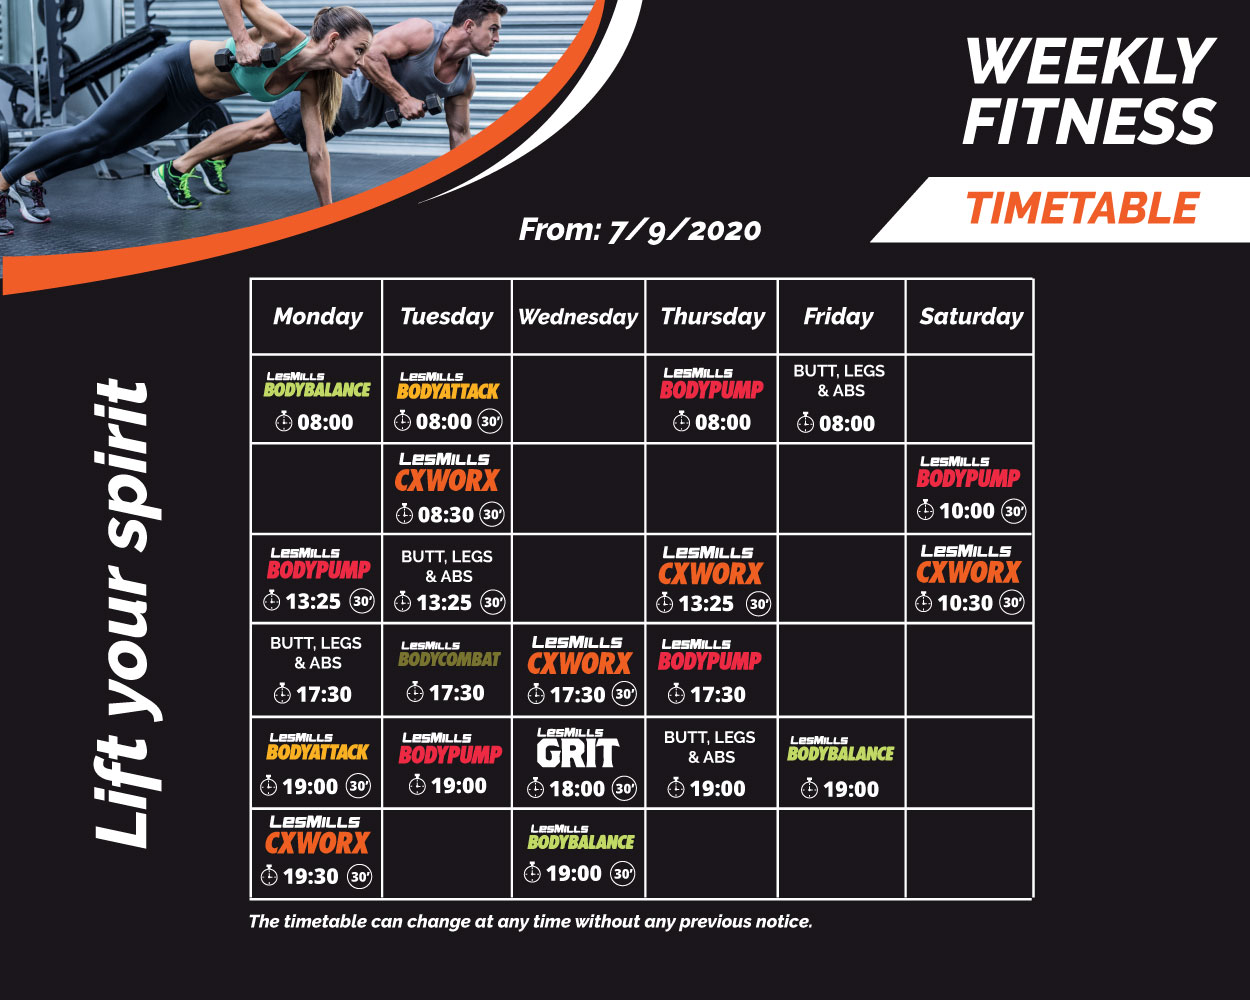 group classes timetable sep 2020